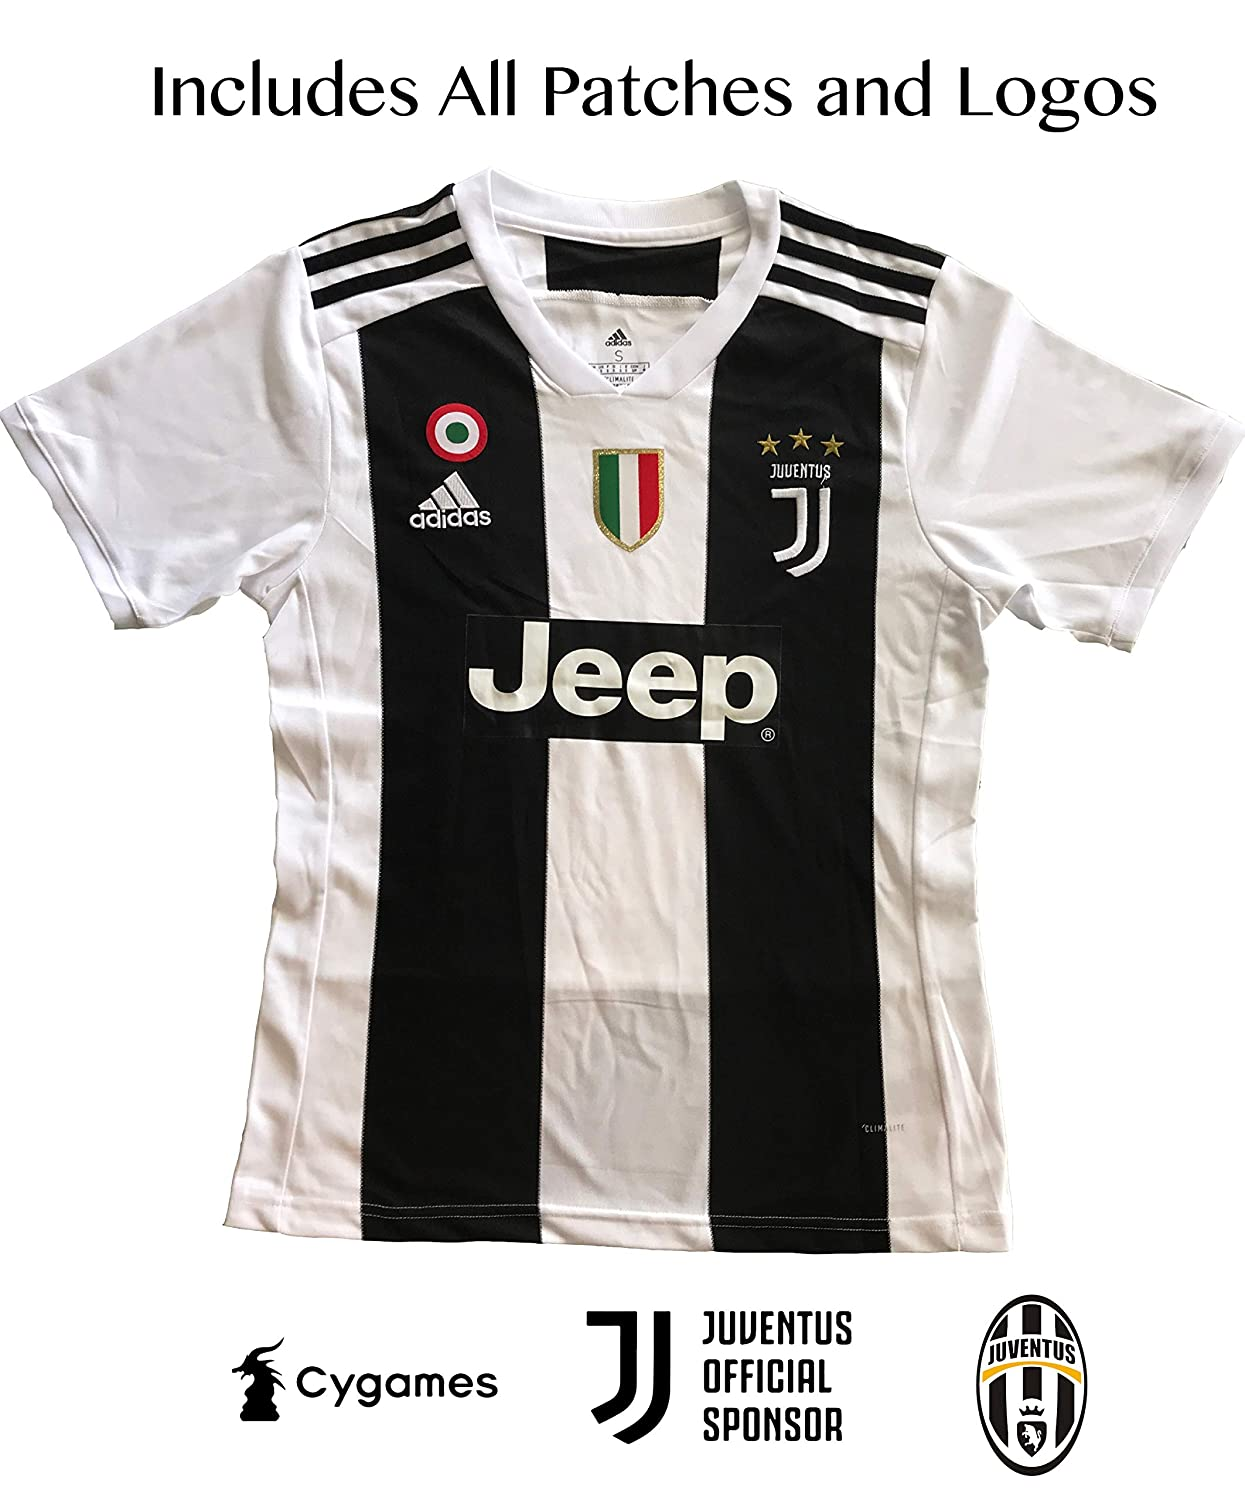 finest selection f97e0 8f36c Amazon.com : REPLI-K The Replica Soccer Jersey for Adults on ...